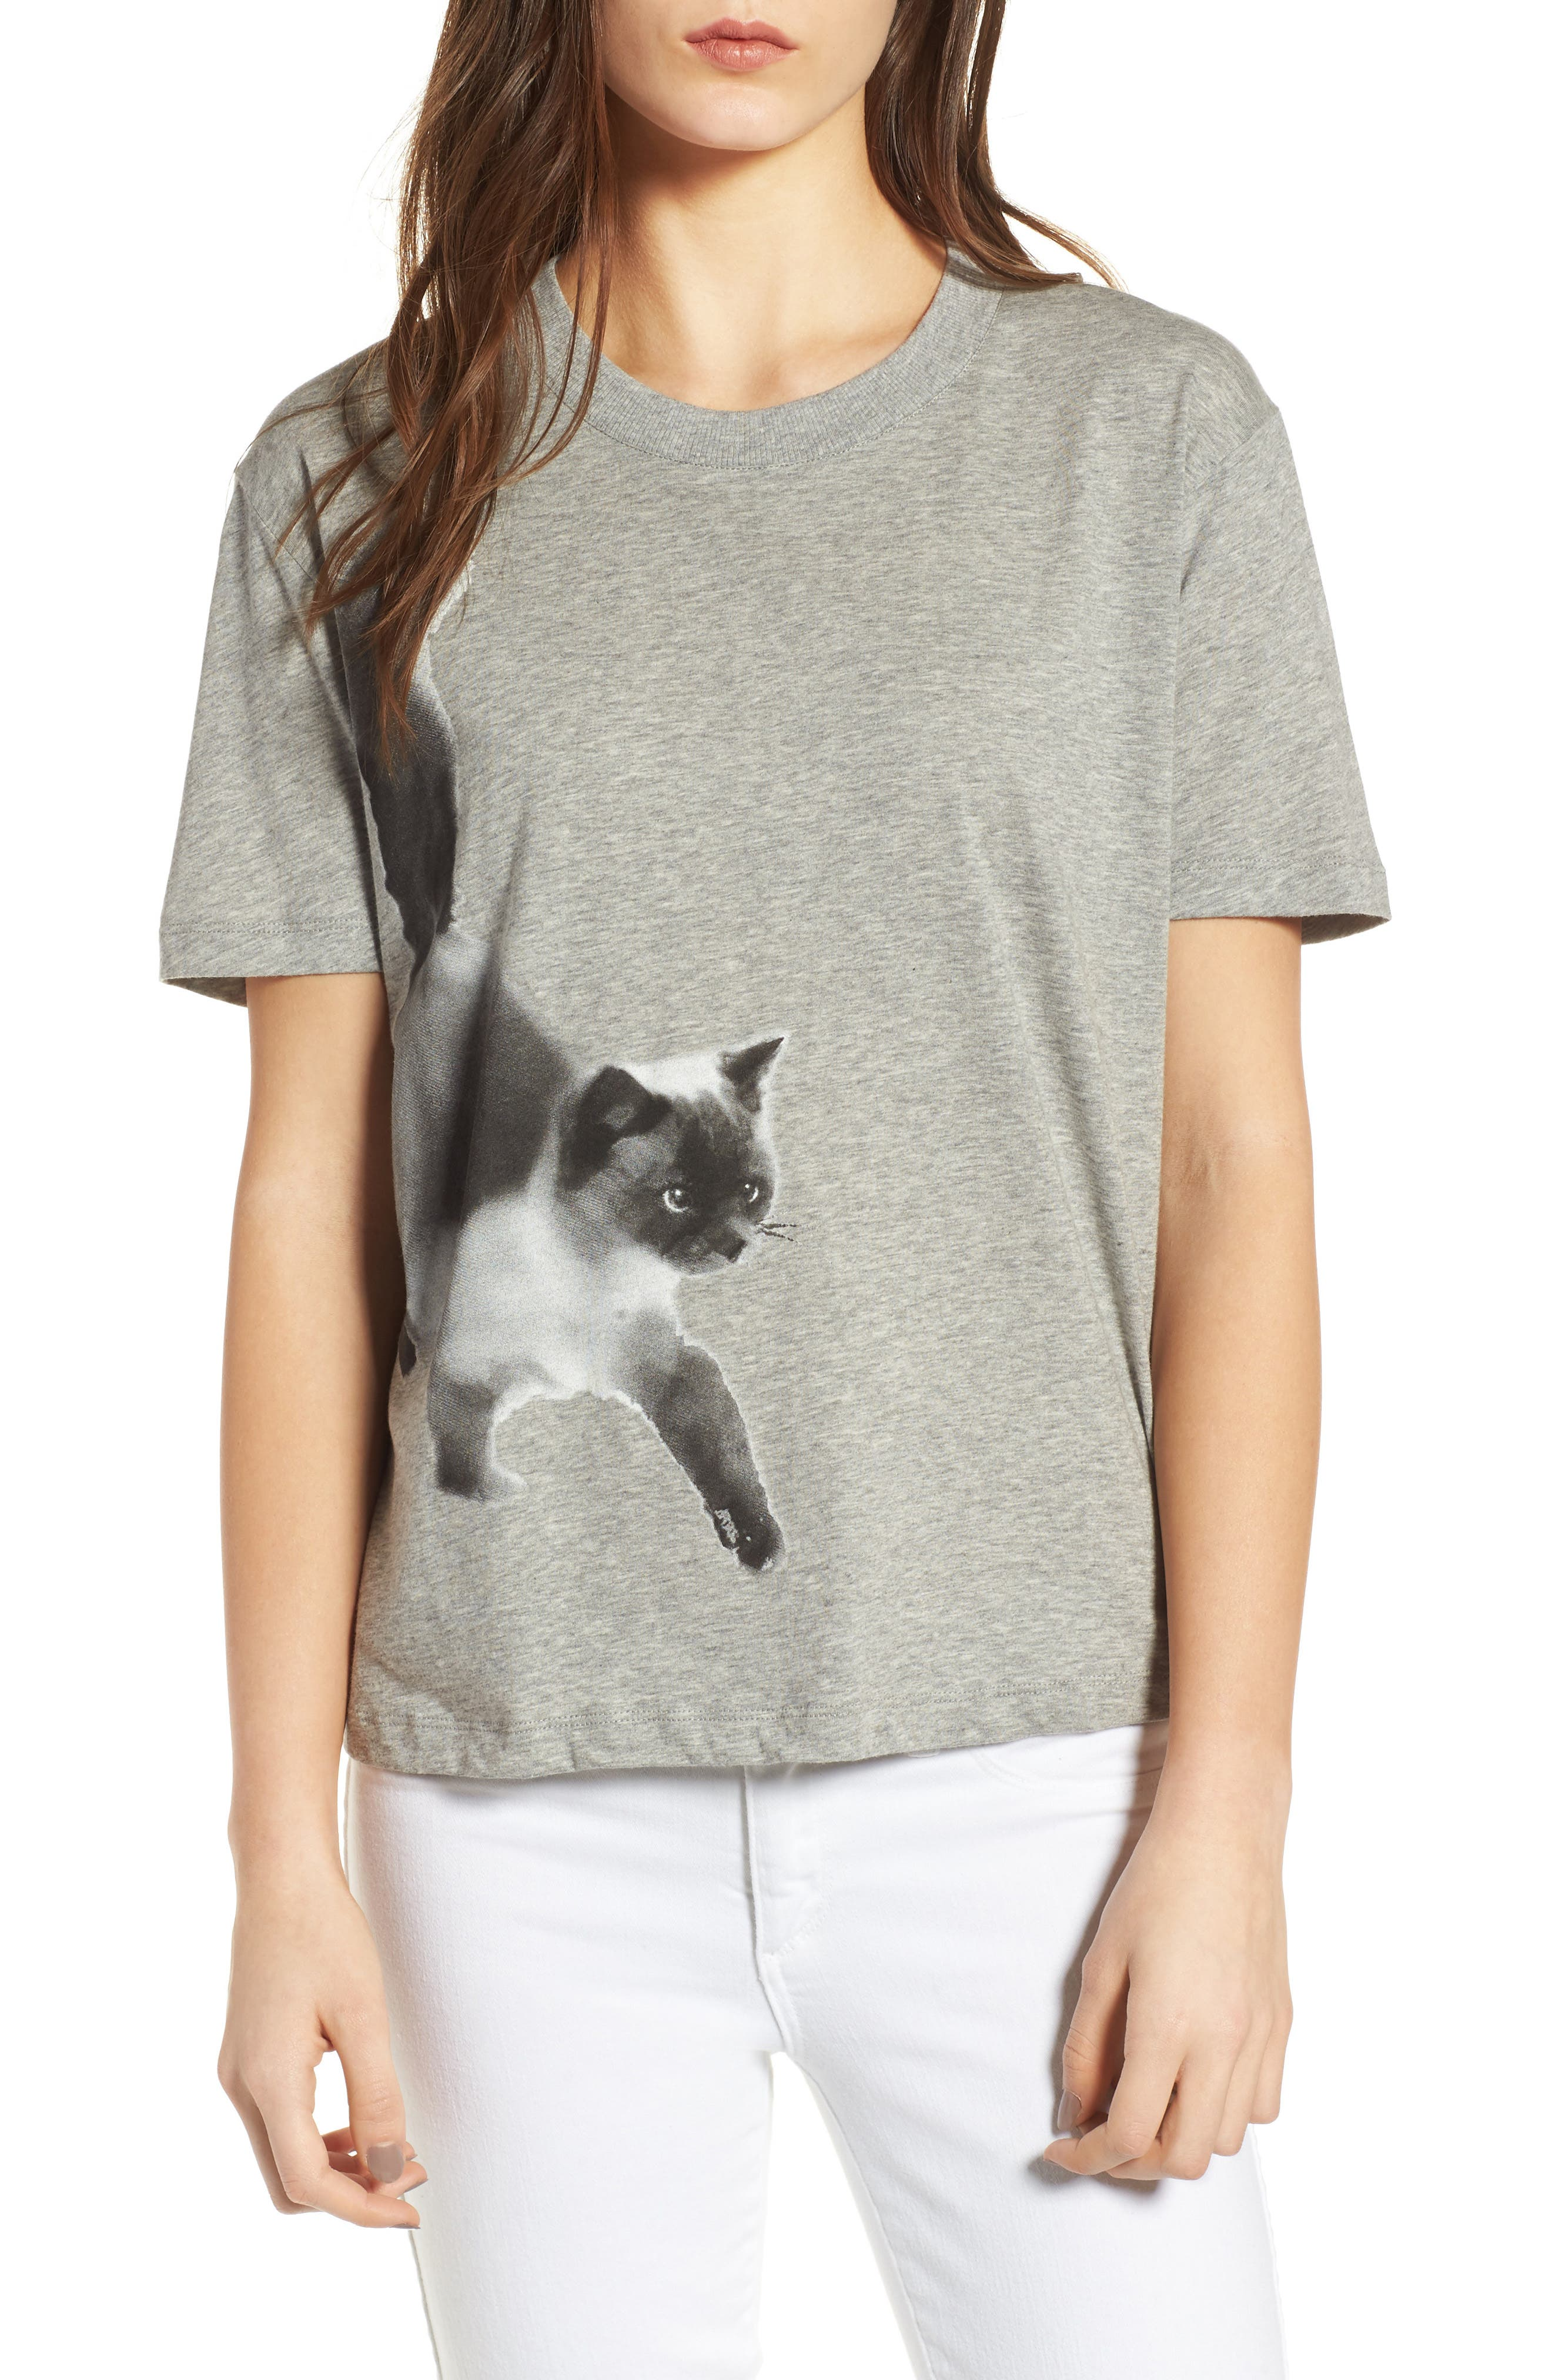 Main Image - Paul & Joe Sister Cat Print Graphic Tee